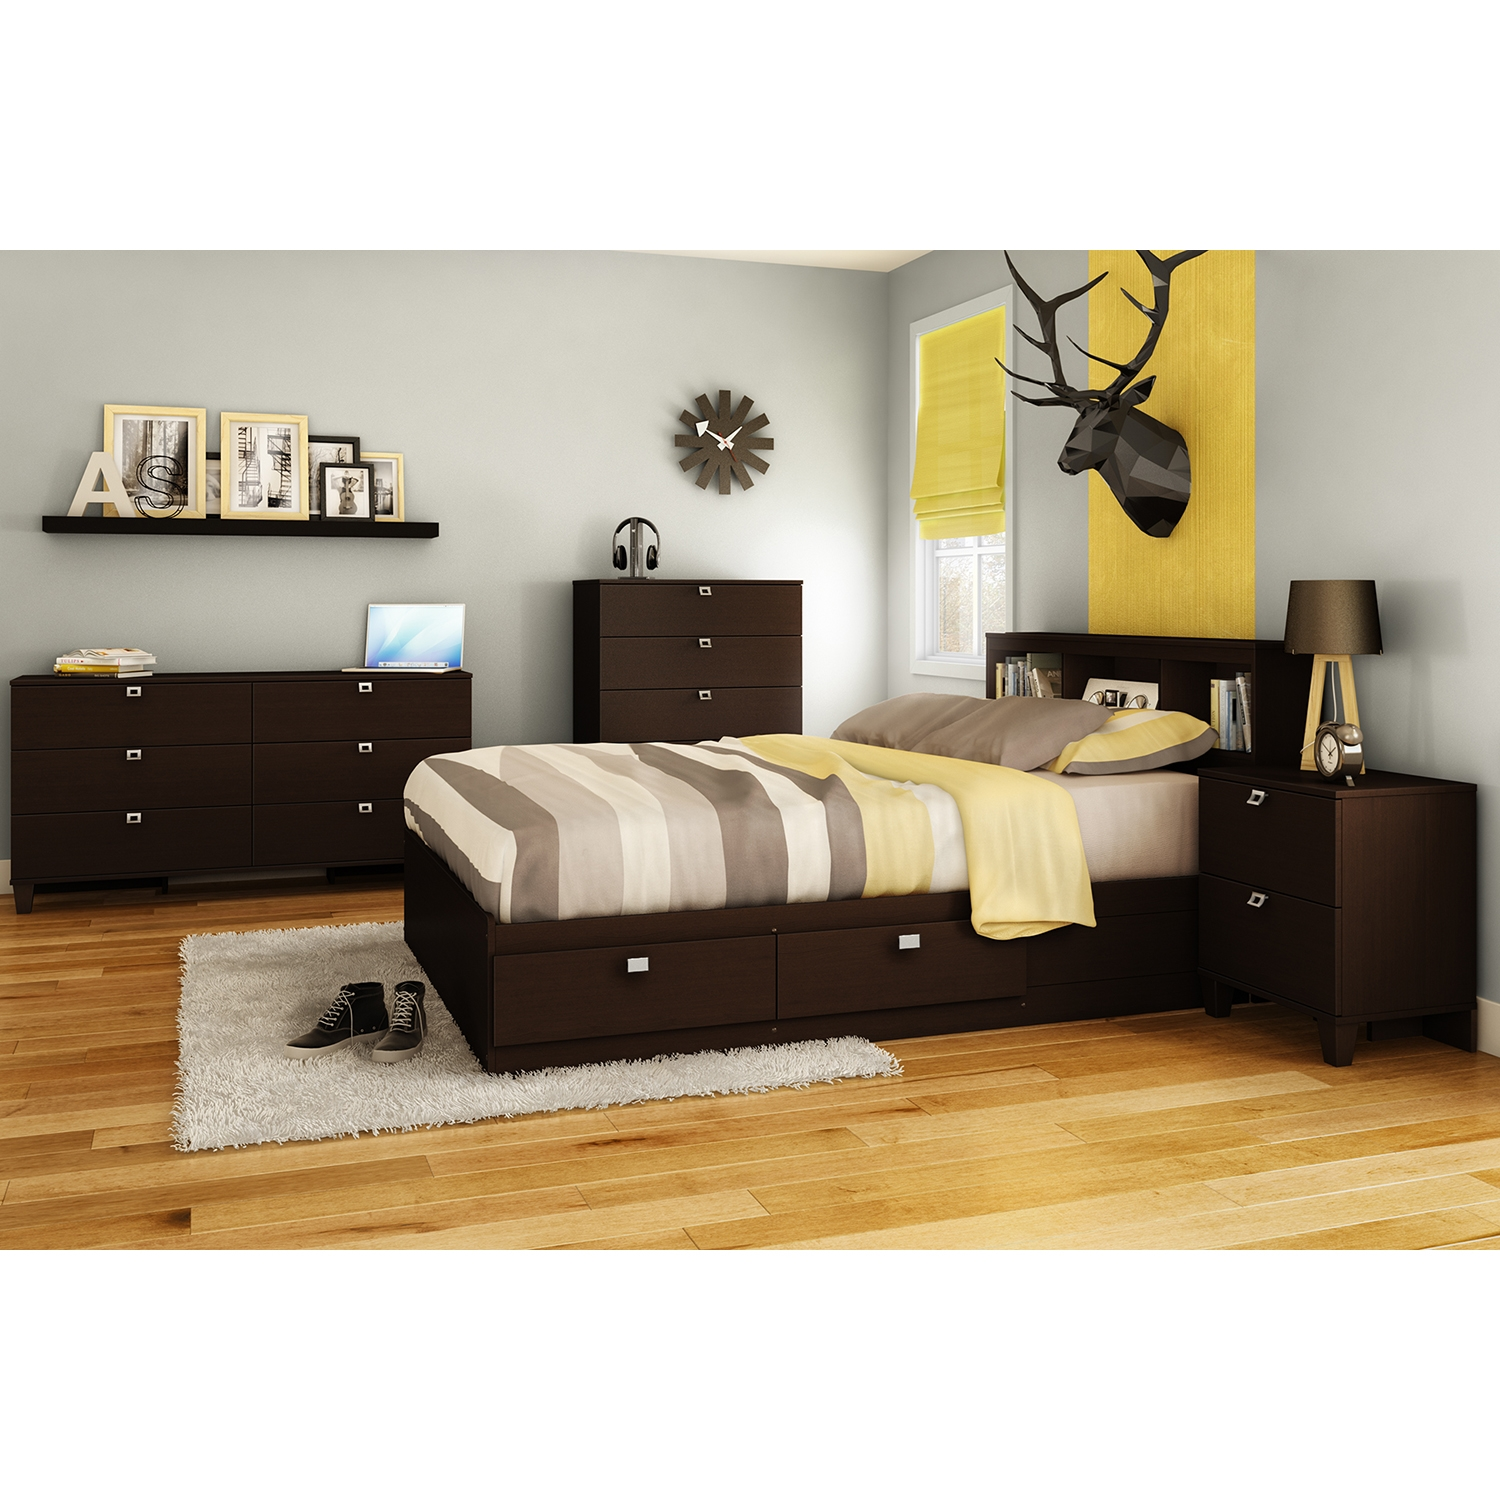 Karma Full Bookcase Headboard - Chocolate - SS-9000A1